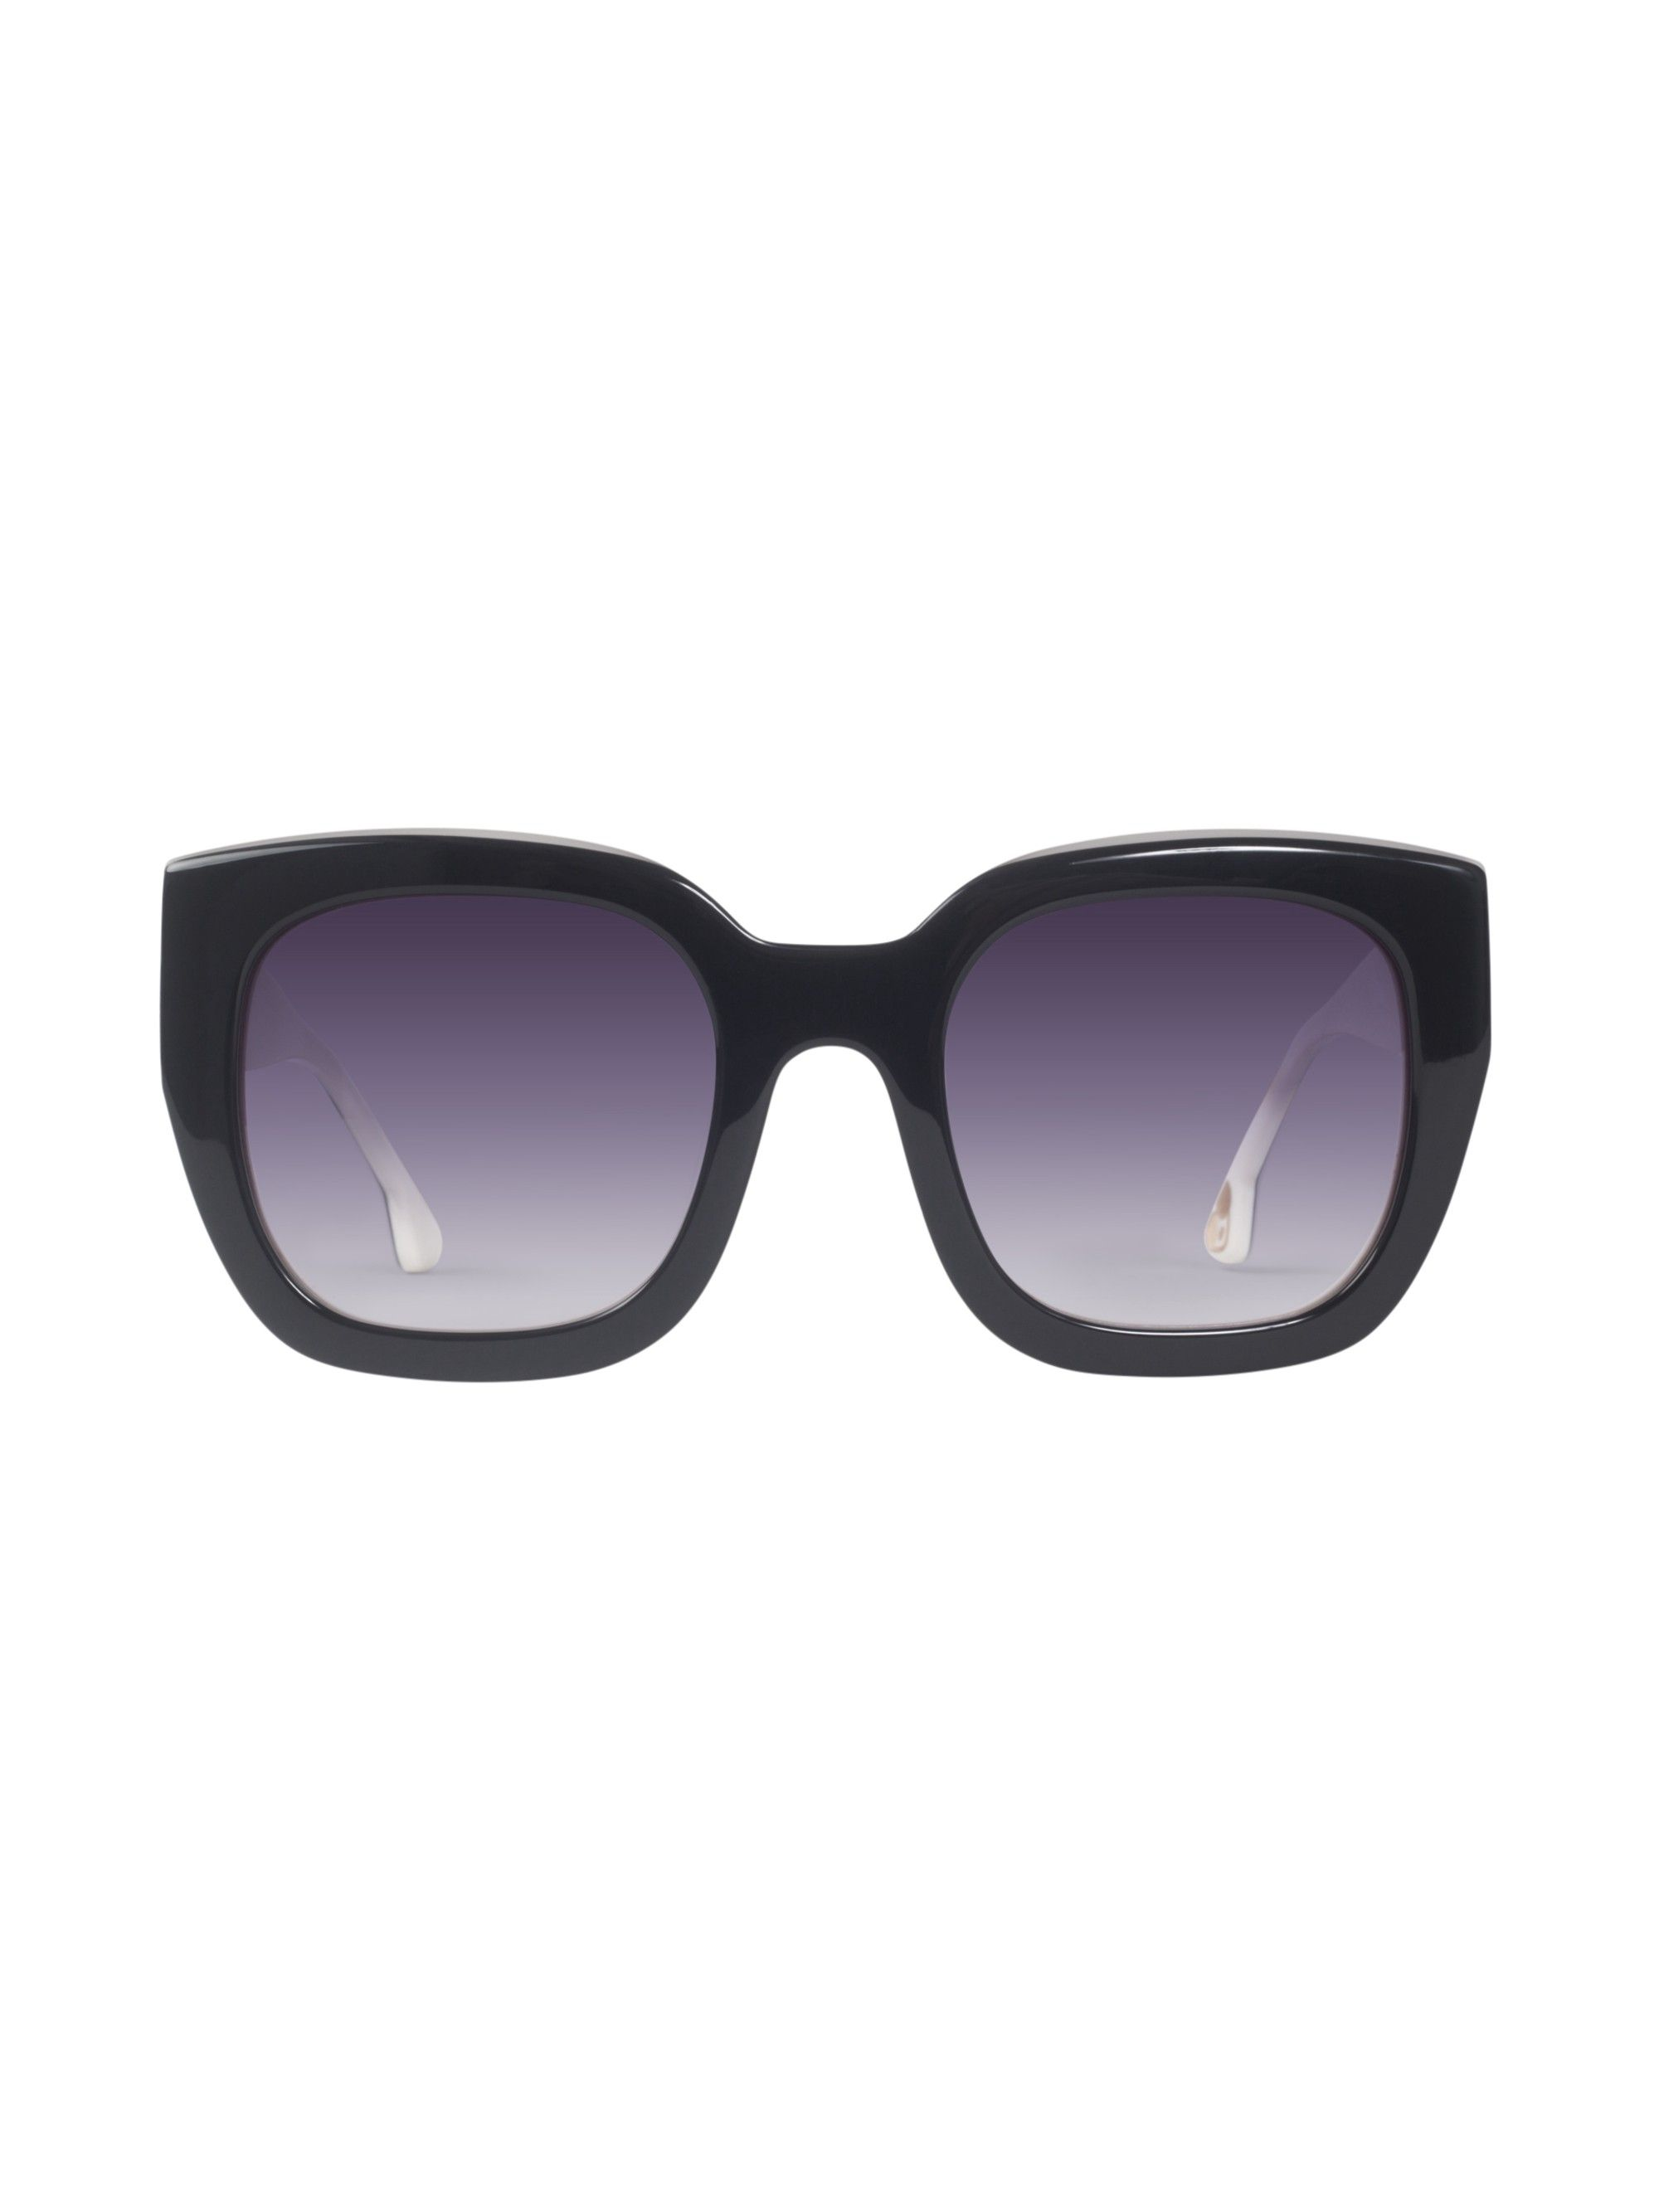 0a2dbfd72a ALICE AND OLIVIA ABERDEEN SUNGLASSES ADD TO MY MOST WANTED - BLACK WHITE.   aliceandolivia